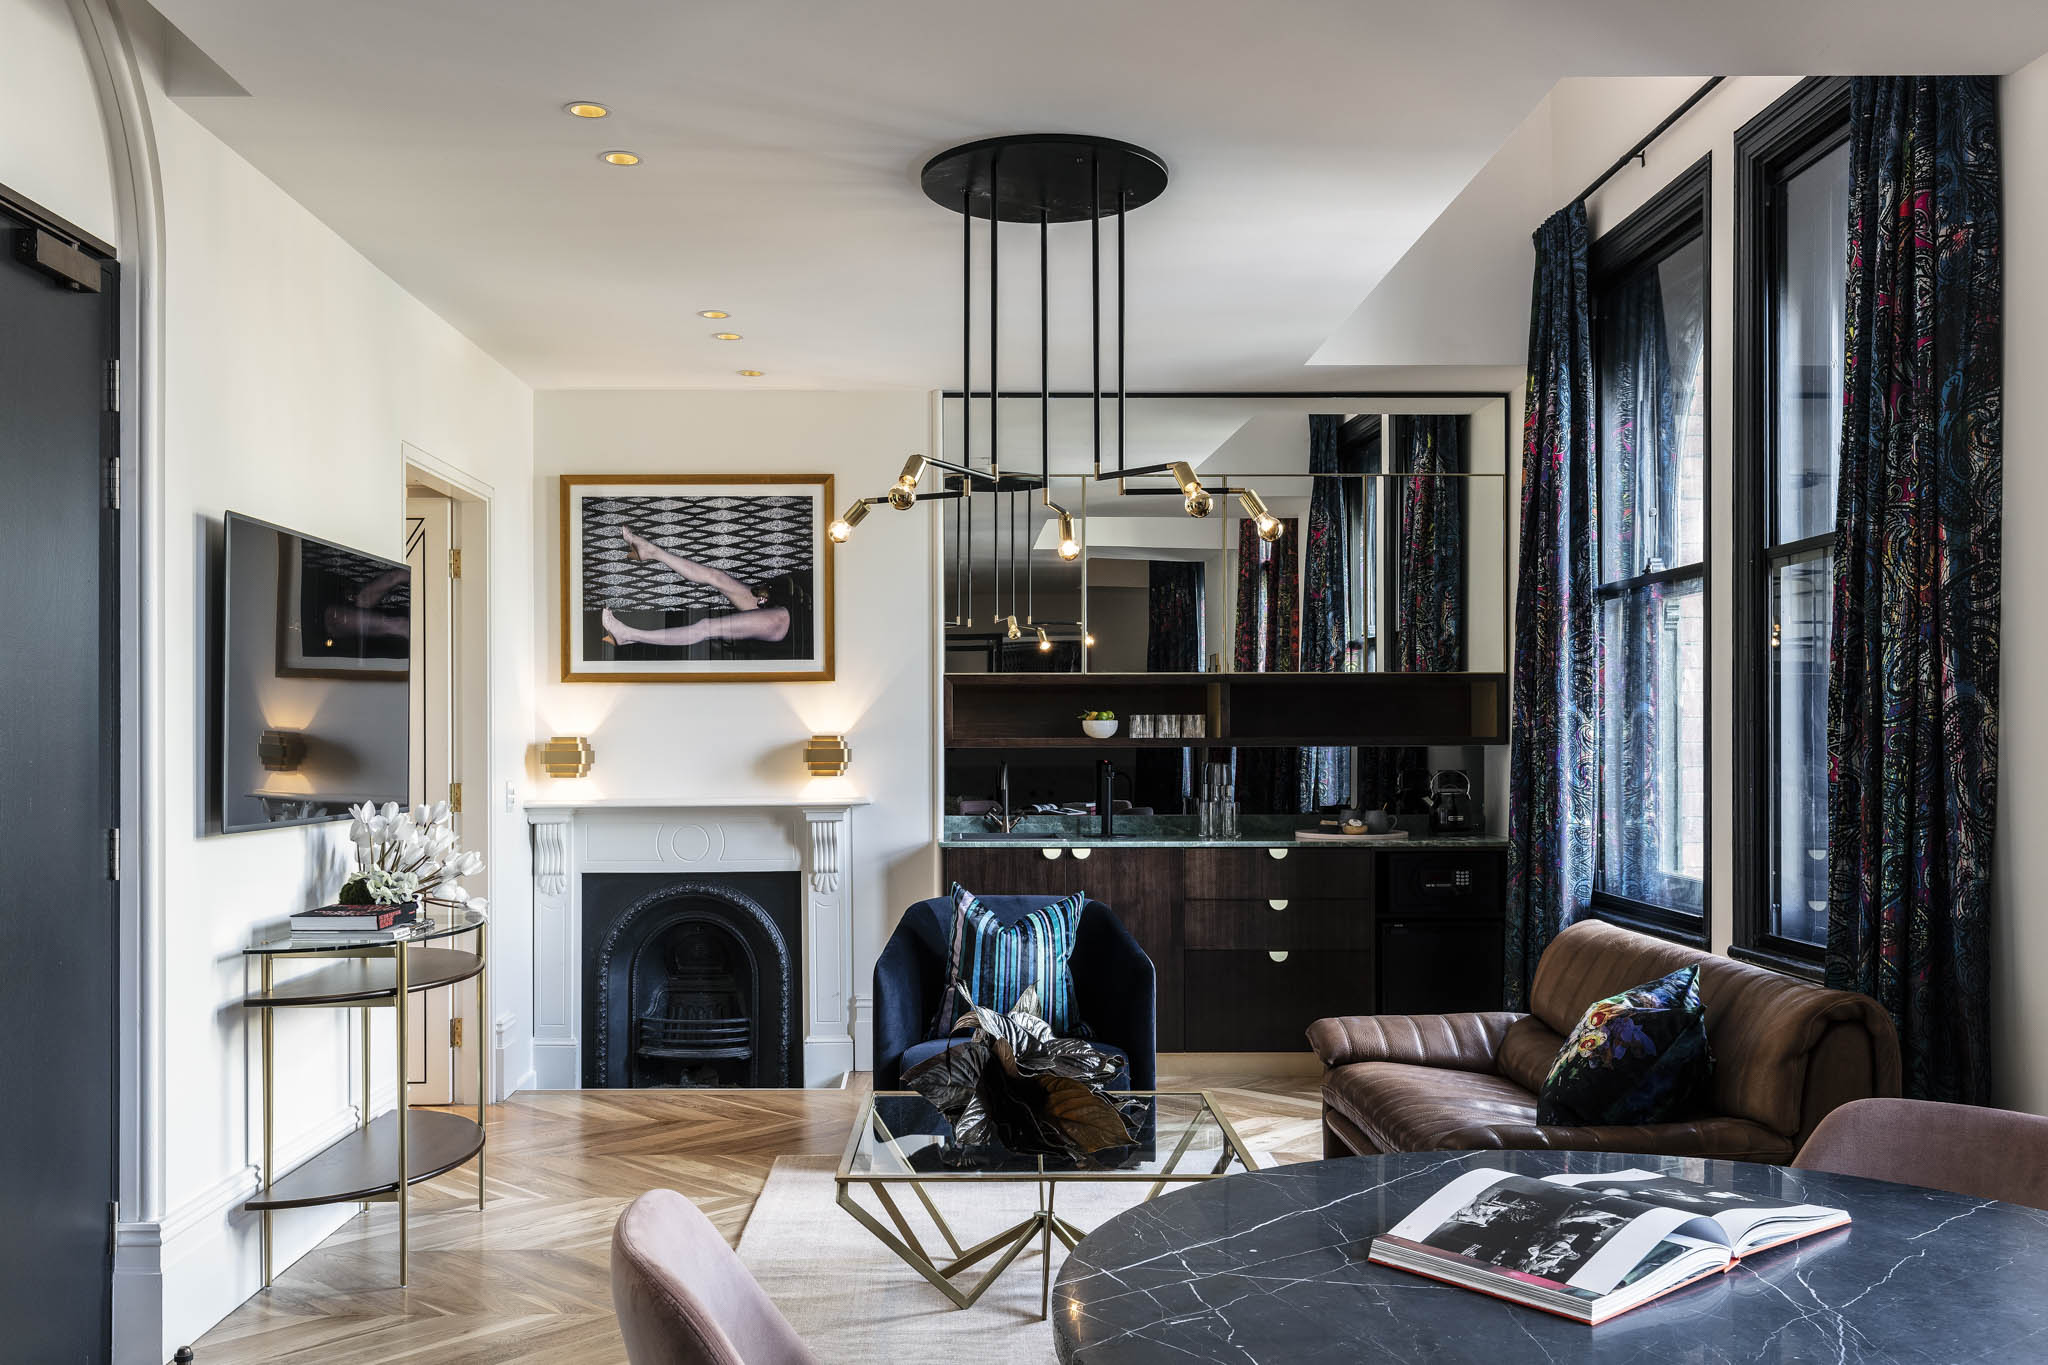 Little Albion Hotel by Space Control Design